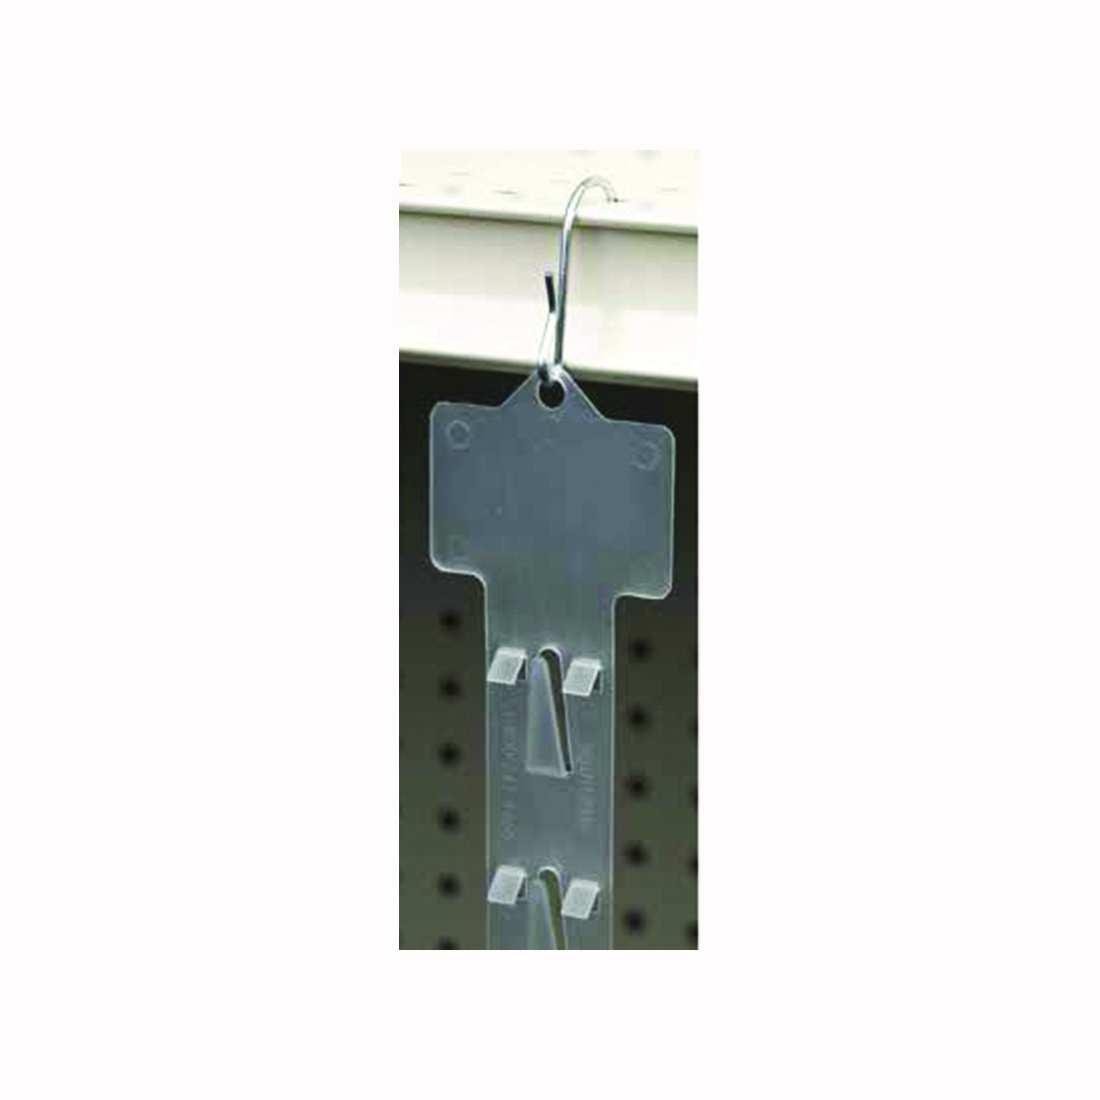 Picture of SOUTHERN IMPERIAL R16-12-WCS2-25B Clip Retailer, Polypropylene, Natural